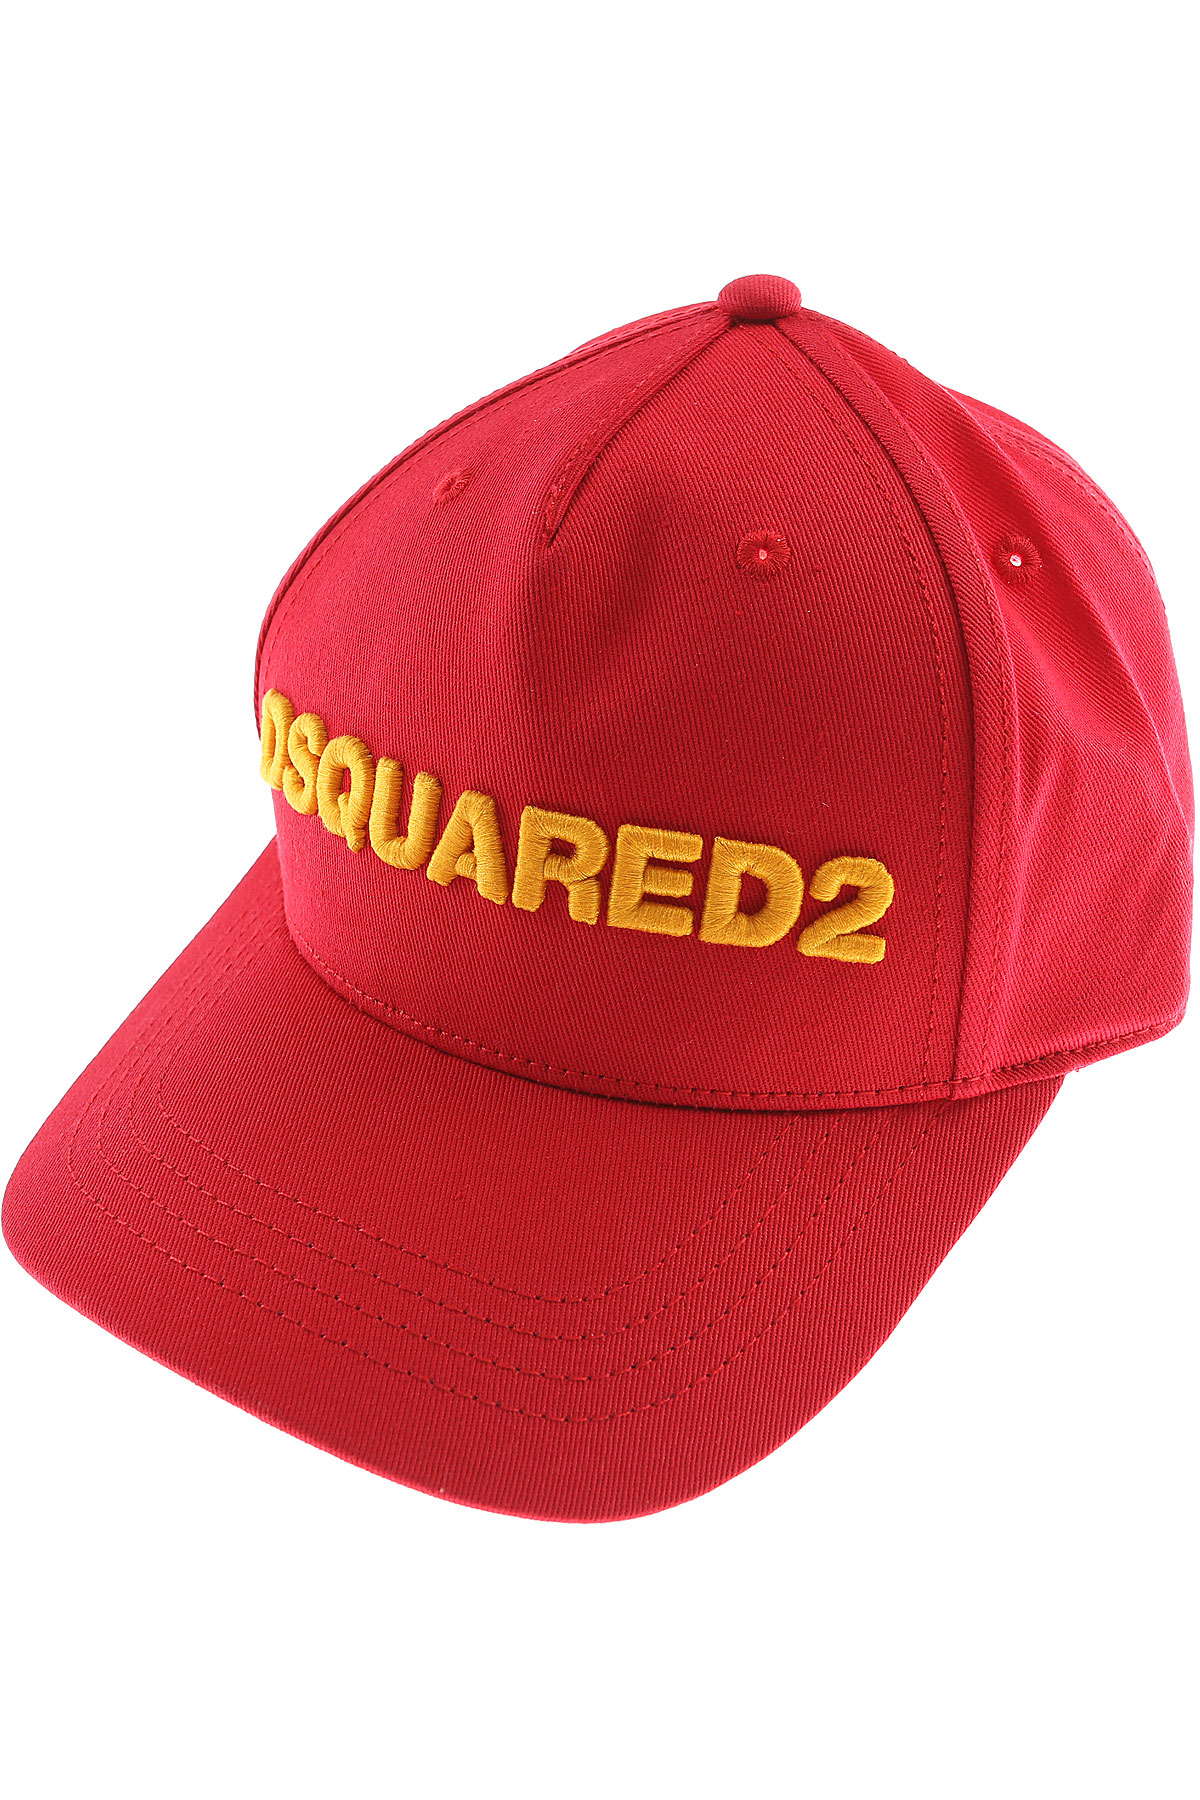 Image of Dsquared2 Kids Hats for Boys, Red, polyester, 2017, I II III